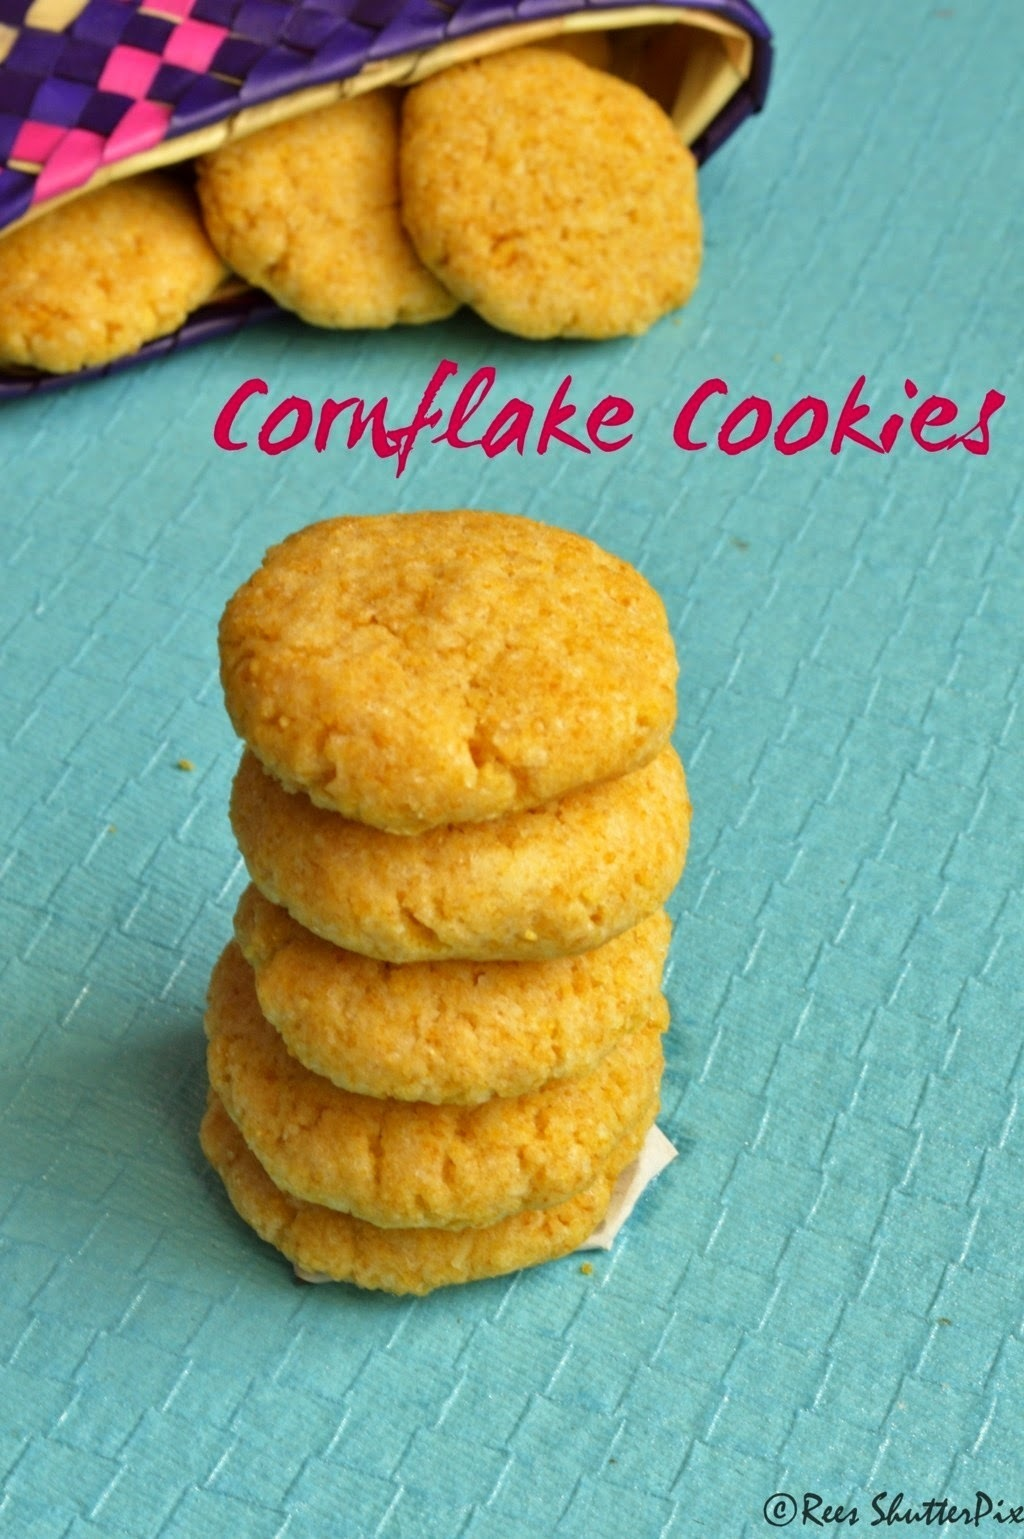 Cornflakes Cookies Recipe | Eggless Baking Recipes